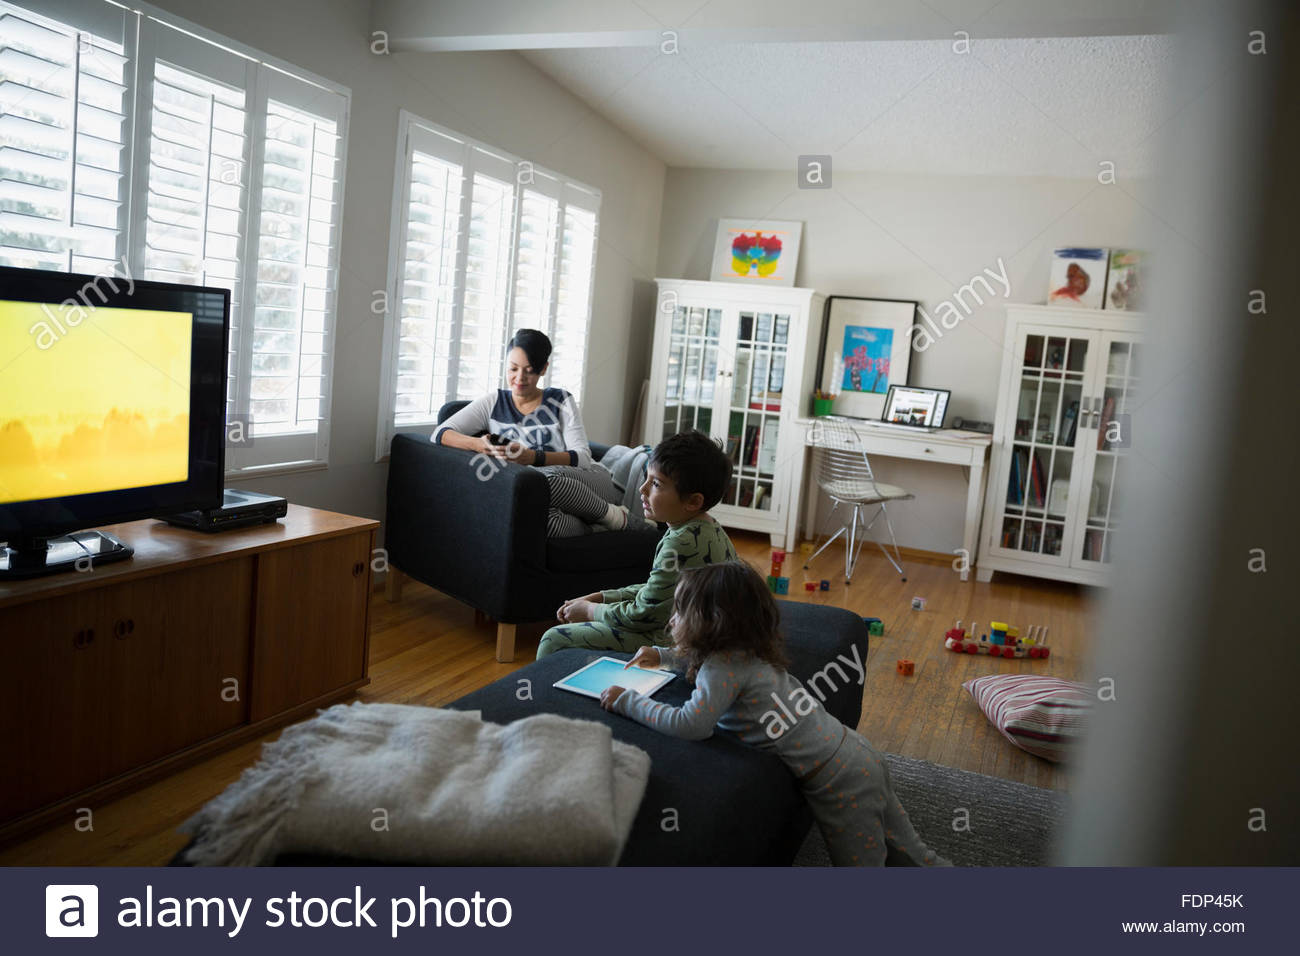 Relaxing Living Room Family Relaxing Watching Tv In Living Room Stock Photo Royalty